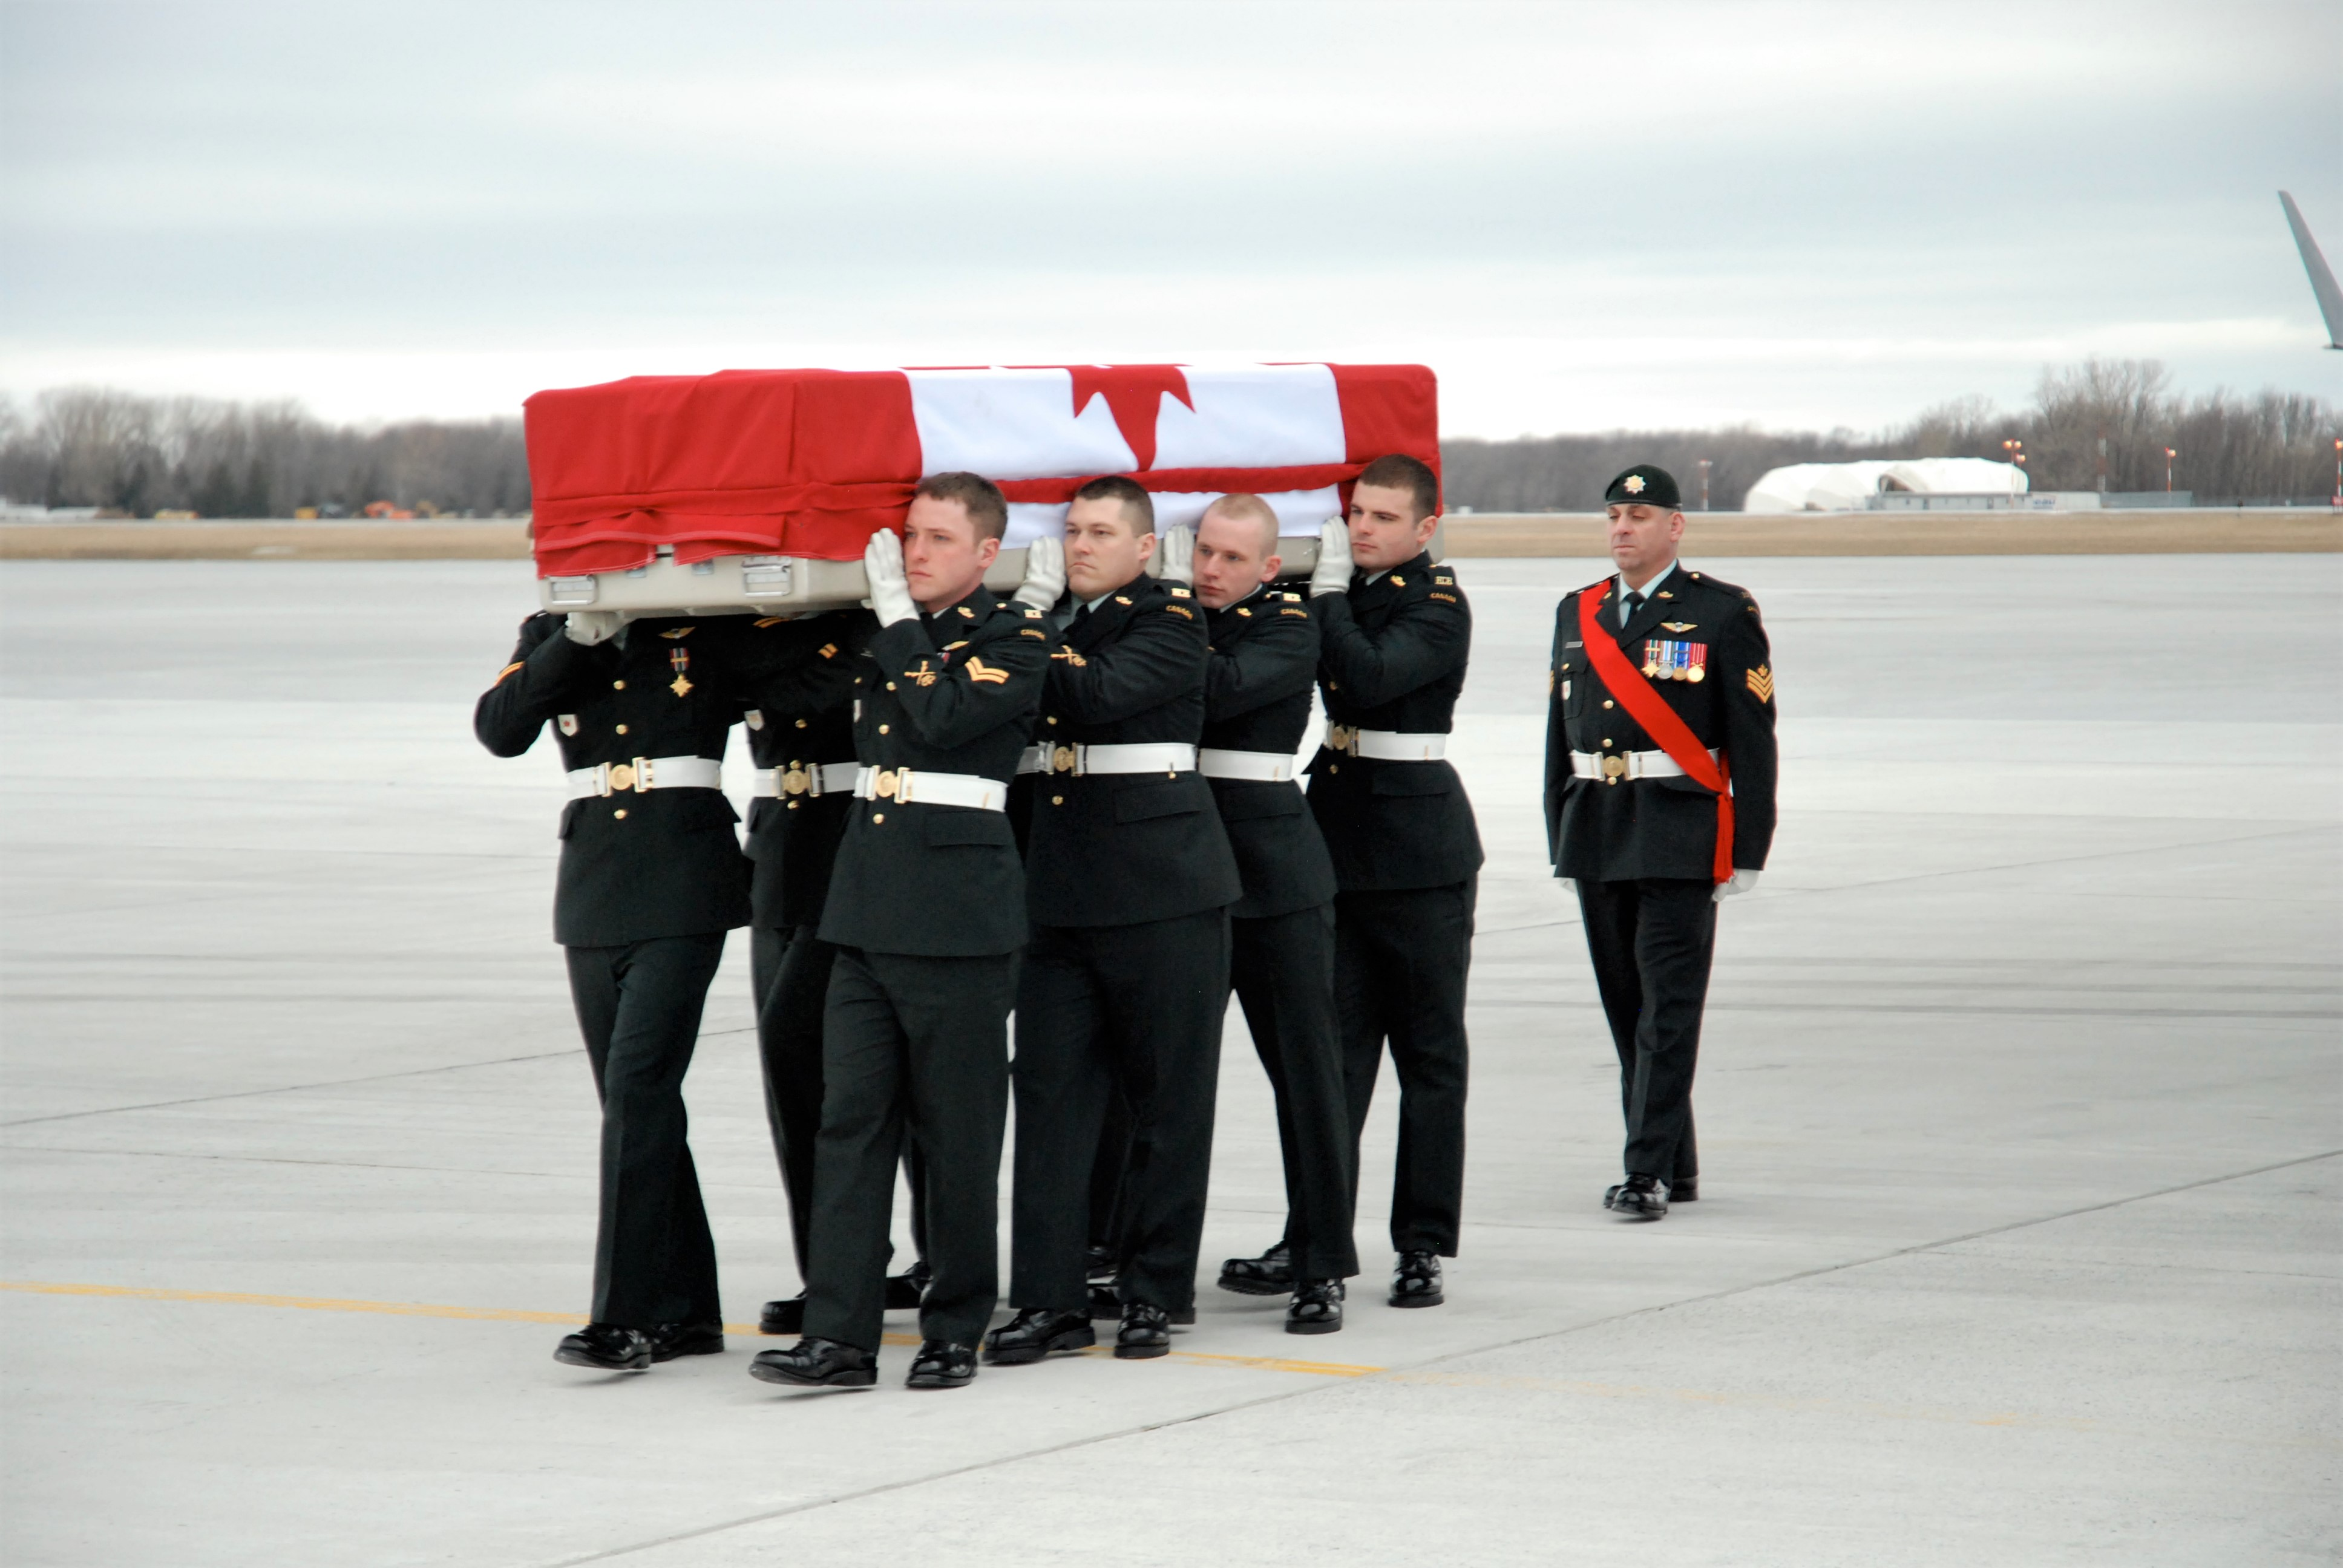 Funeral– A Mother's Worst Nightmare - Watching My Only Child Coming Off A Military Aircraft In A Flag Draped Coffin In Trenton. I Love And Miss You, Joshua. Love, Mom